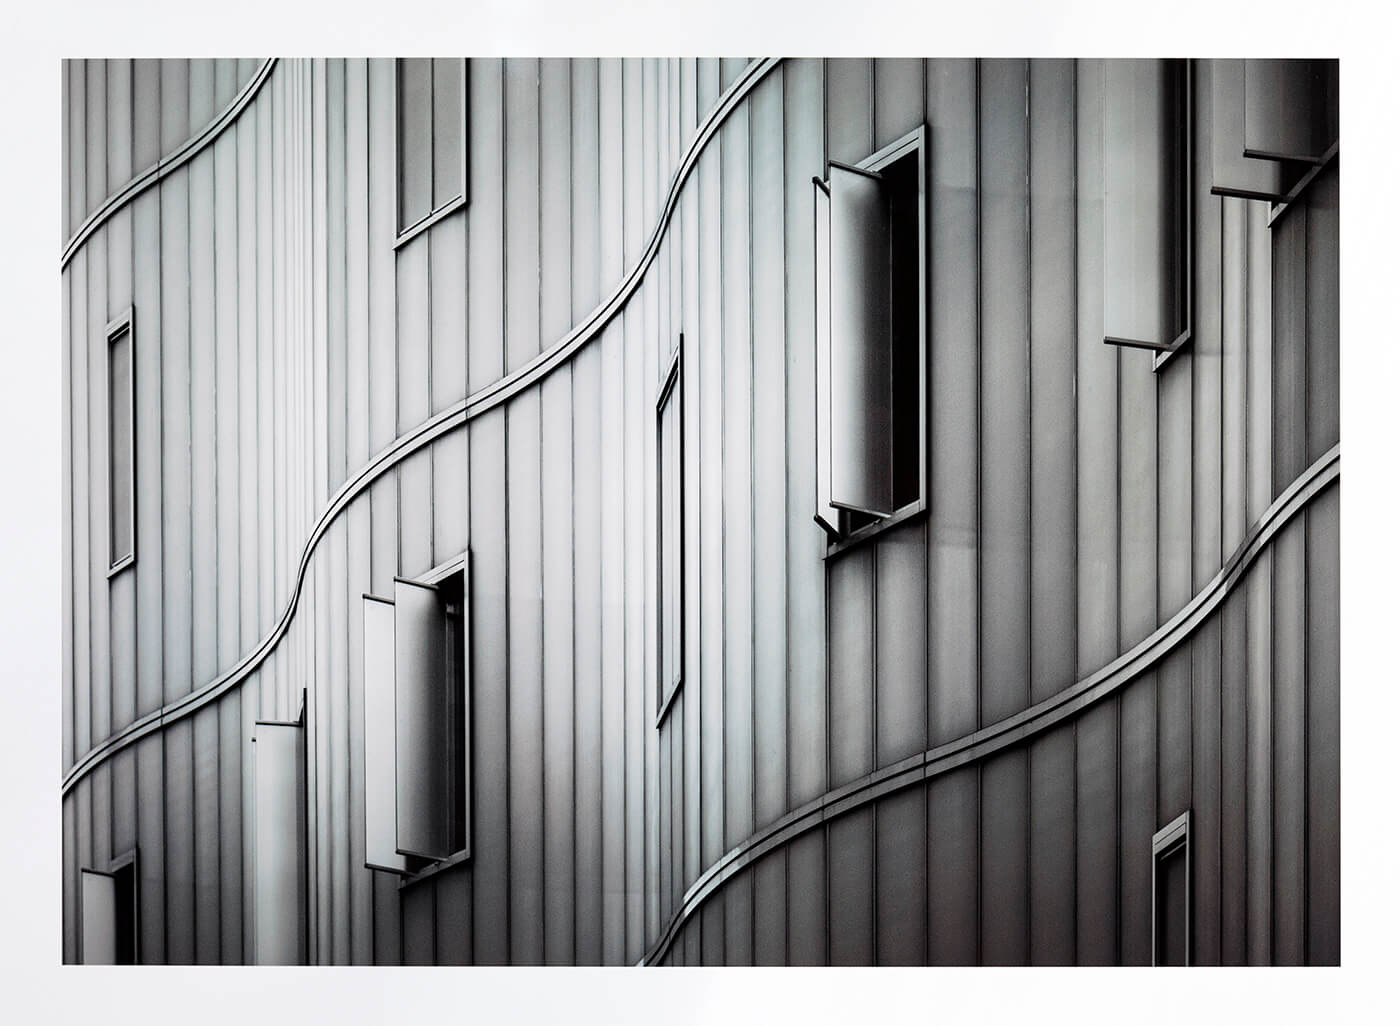 Mark Cornick's Urban View Category Winning Image 'Architectural Detail, London, England'